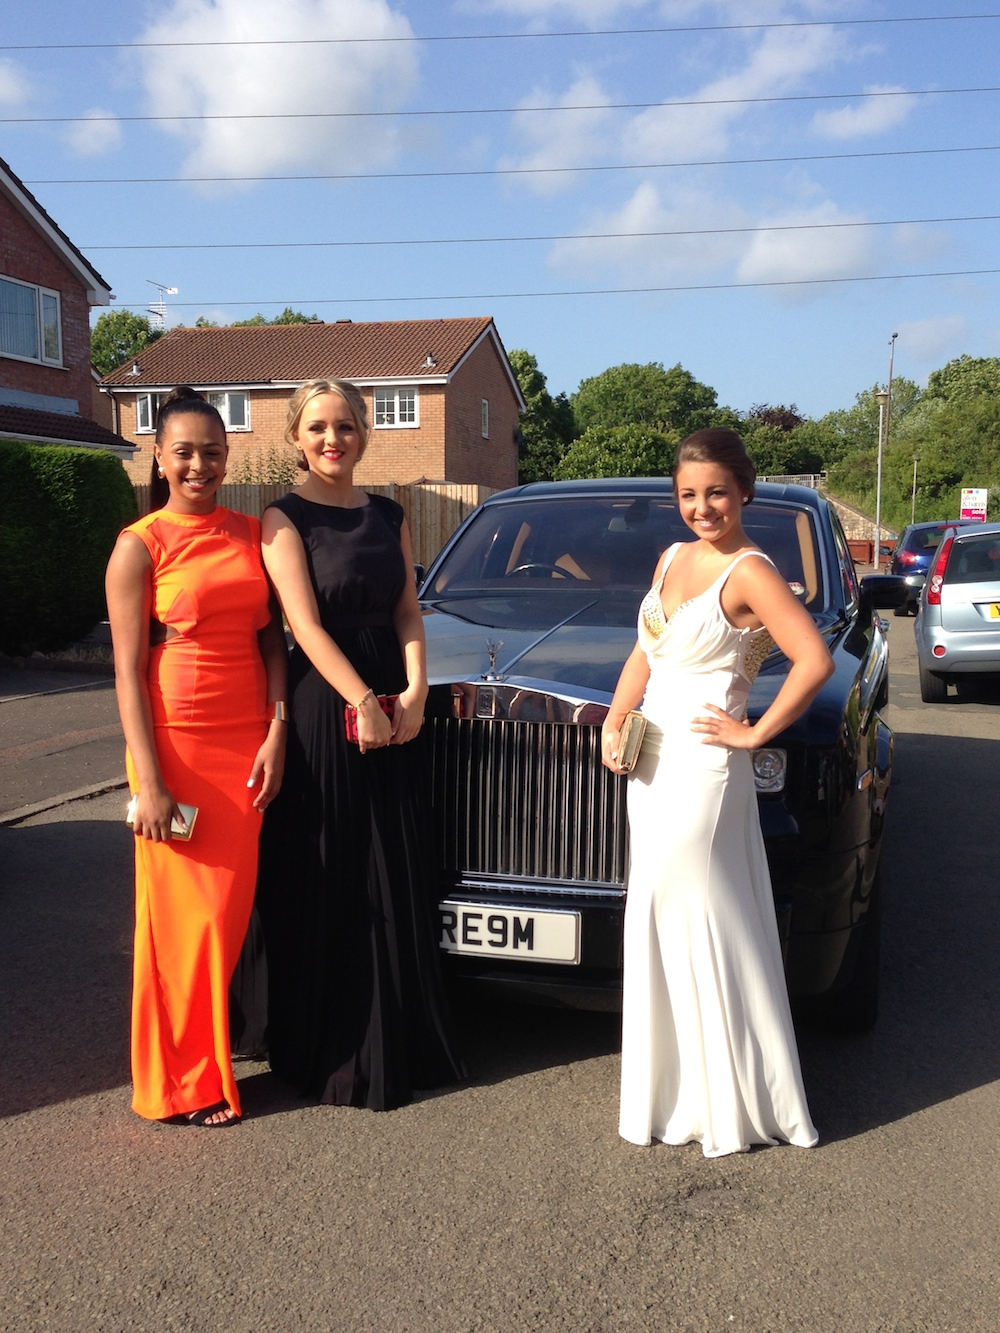 The Rise of the UK Prom: How Prom Cars Have Driven in a New Direction